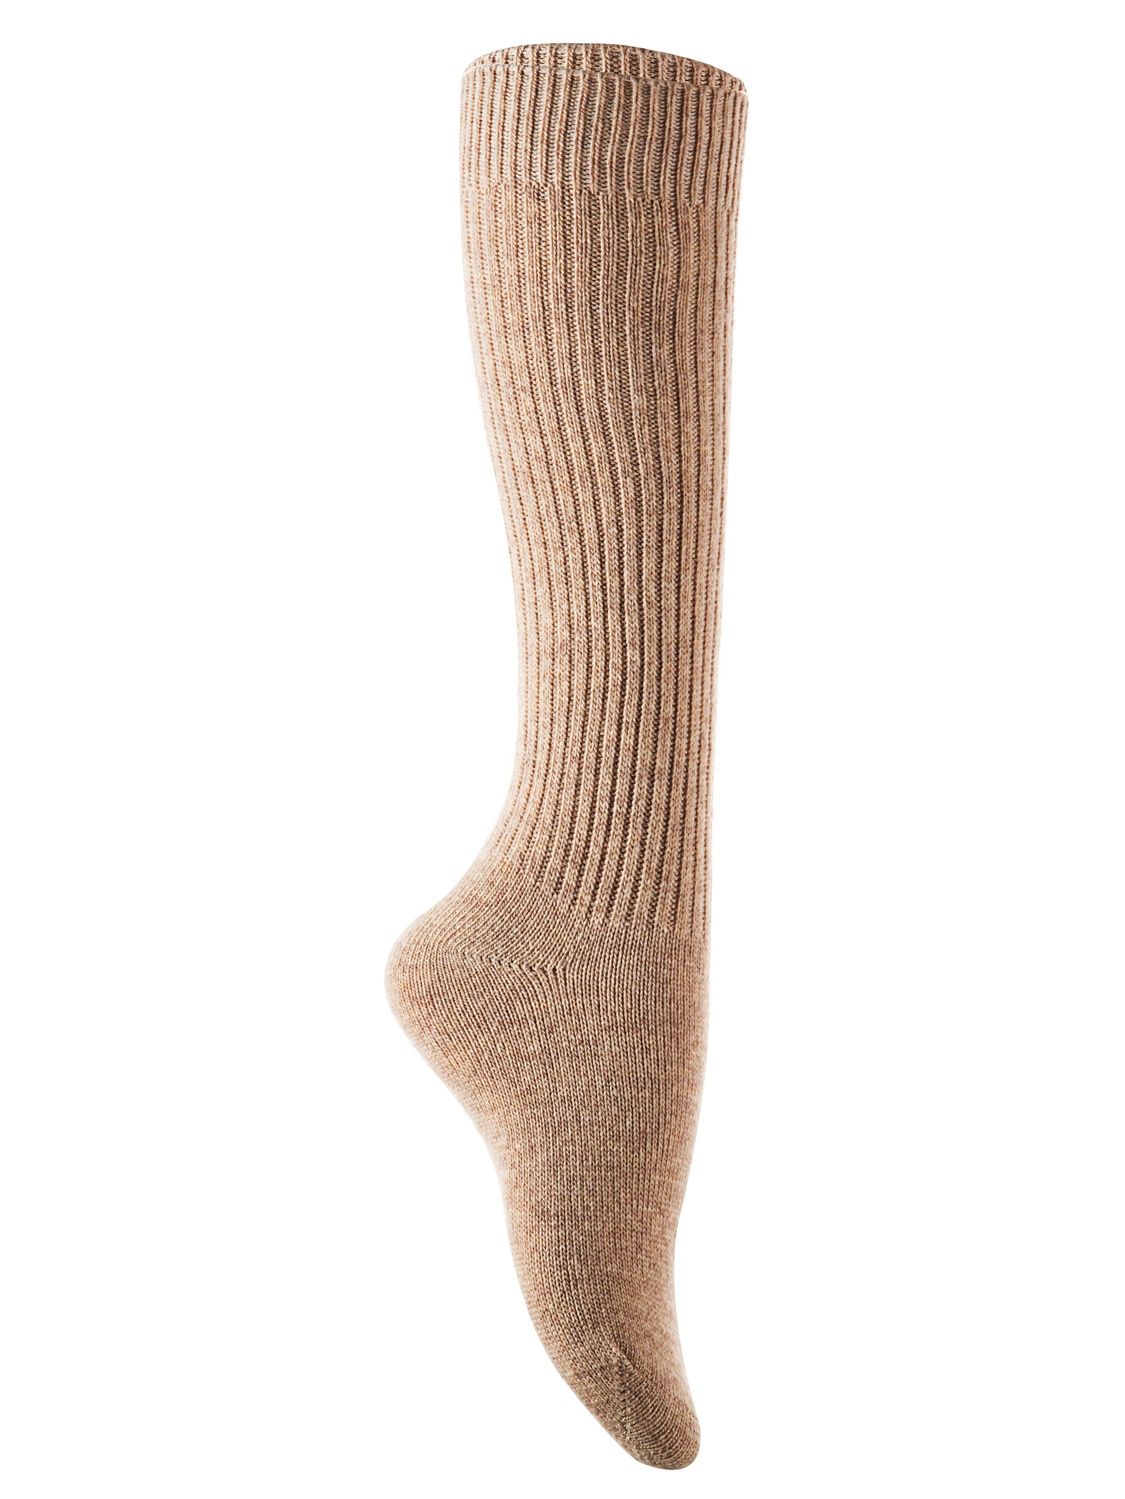 Lian Style Big Girl's 2 Pairs Knee-high Knitted Wool Socks stripped FS05 Size XL(Beige)